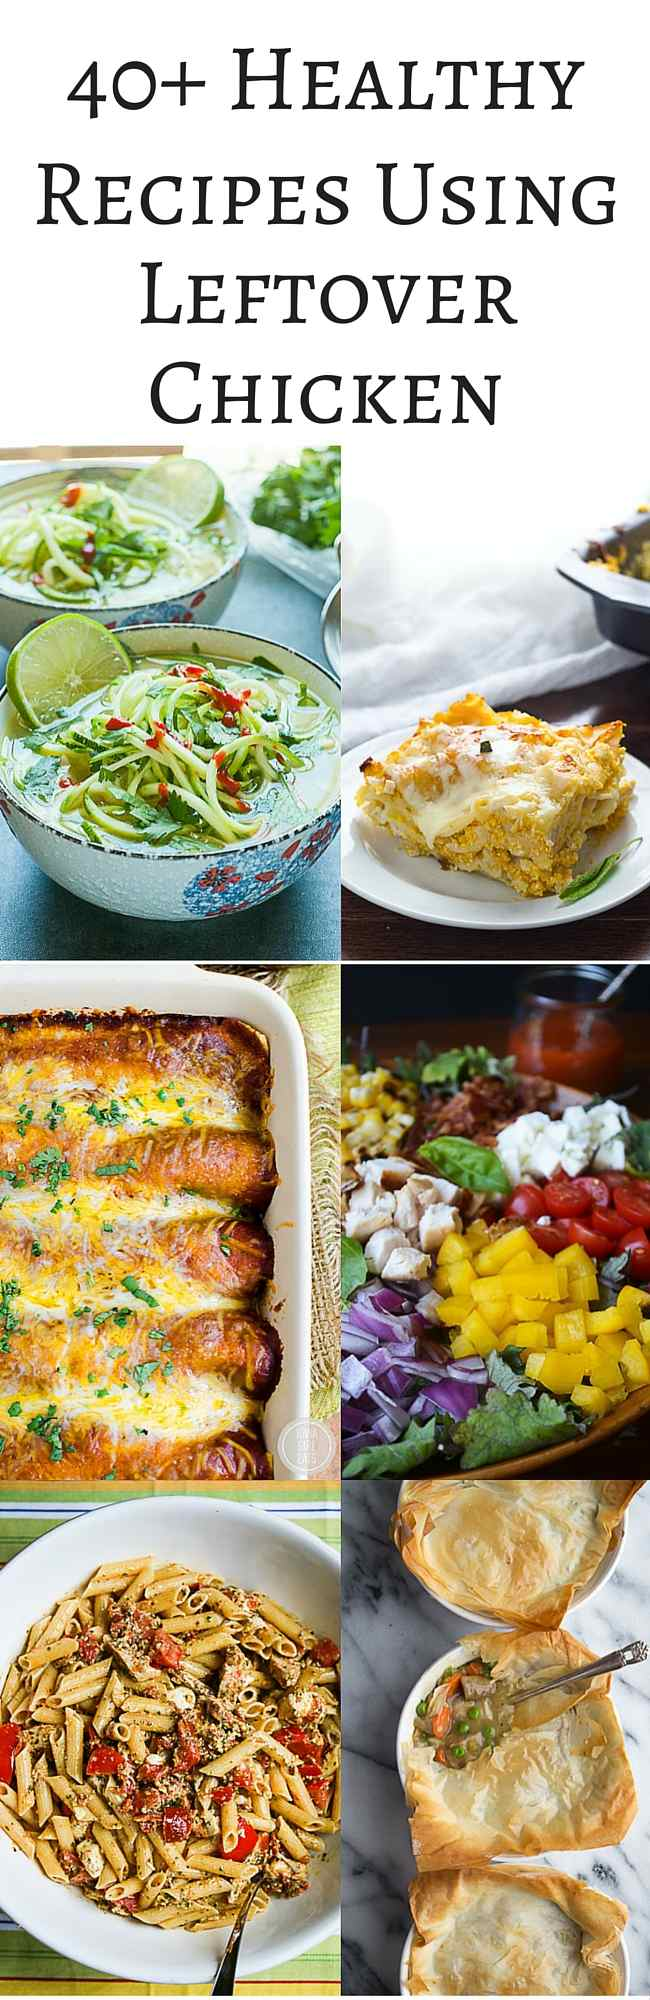 40+ Healthy Recipes Using Leftover Chicken - use leftover roasted, grilled, and poached chicken in salads, soups, enchiladas, empanadas, pasta and more